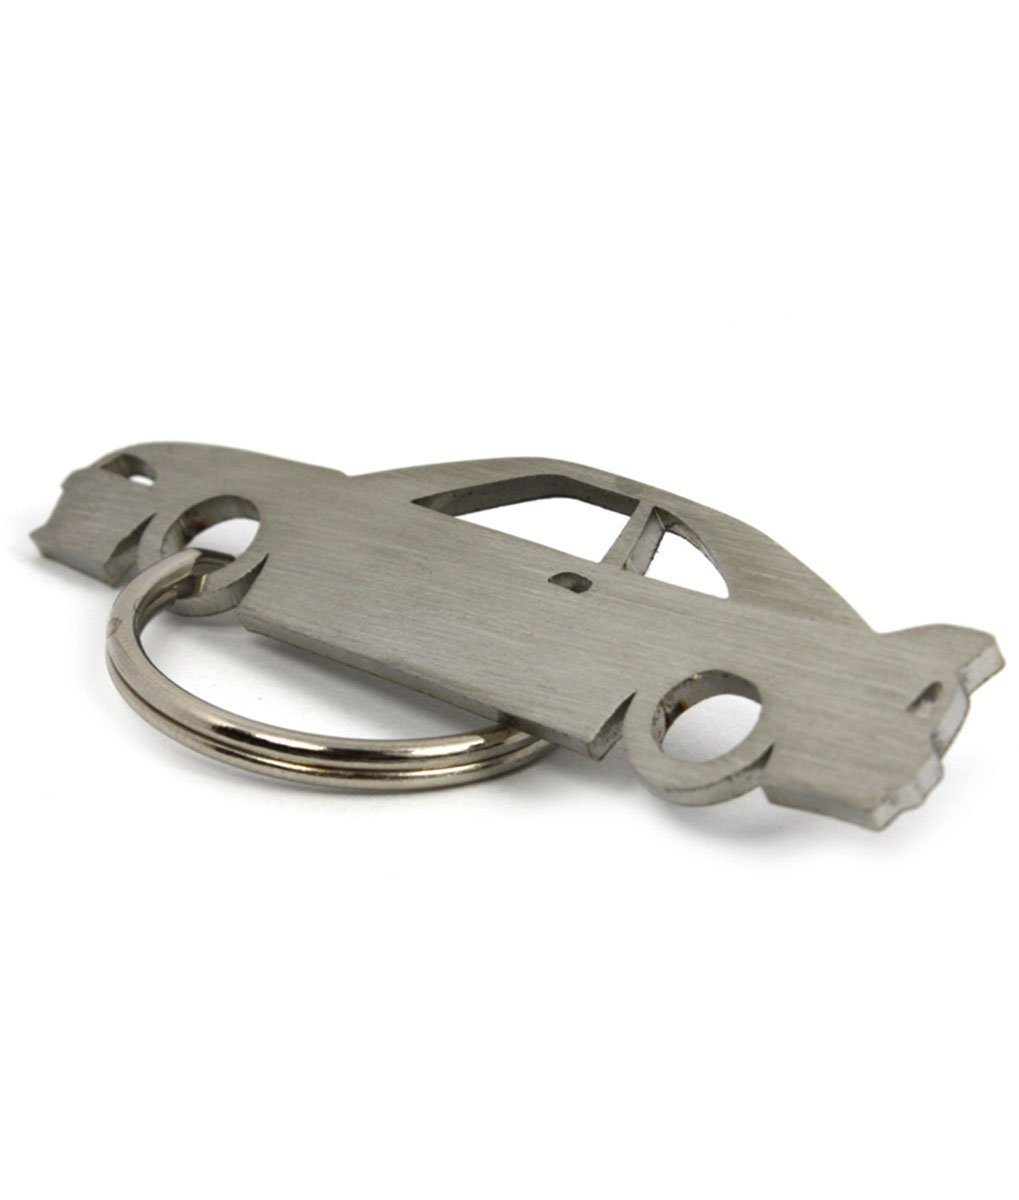 Key Ring - Nissan Skyline R33 Key Ring